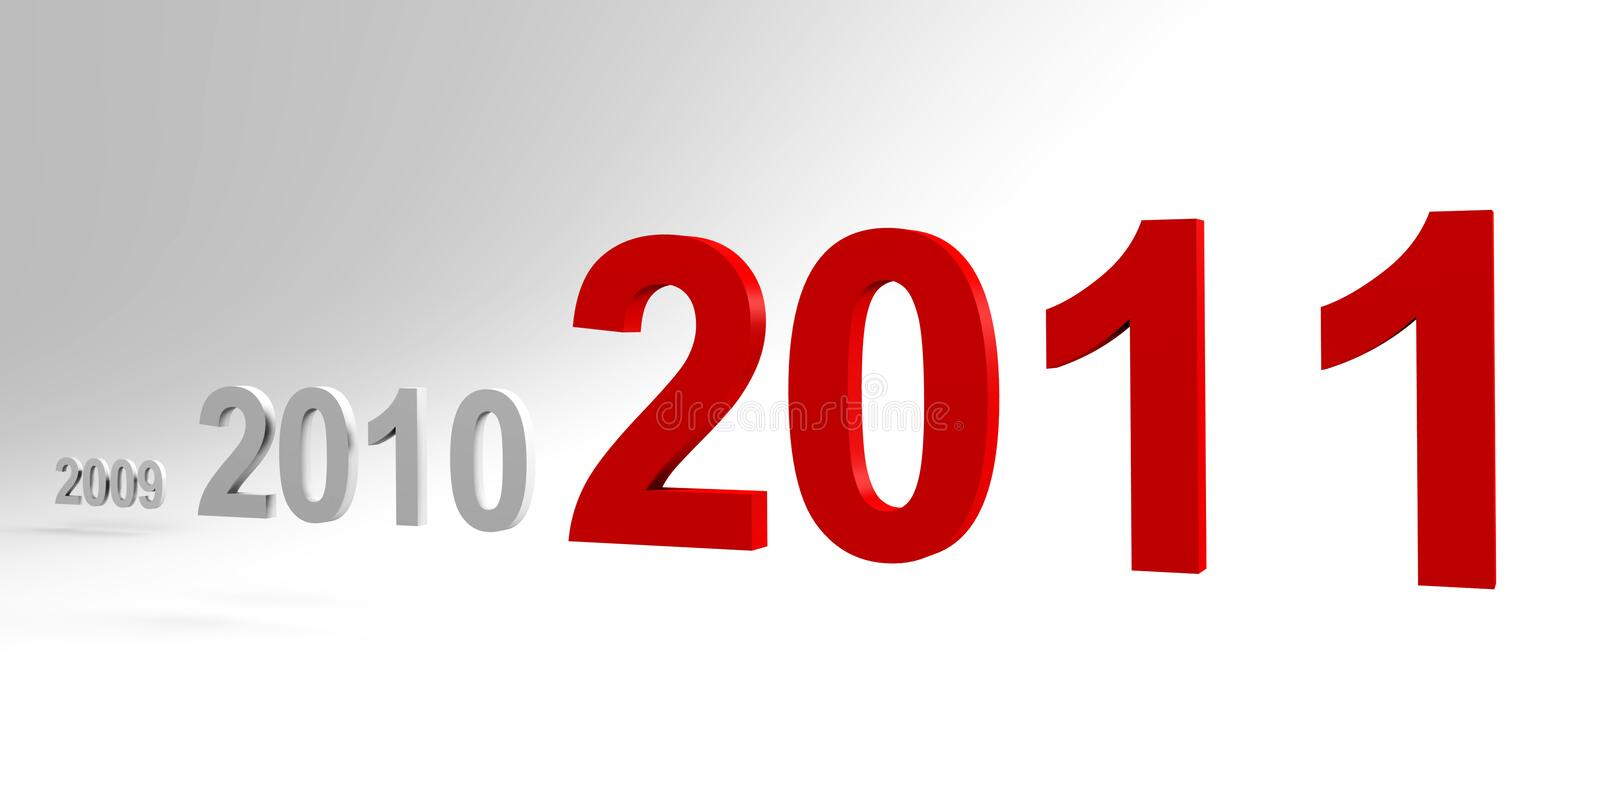 The New Year 2011 Is Coming - A 3d Image Royalty Free Stock Image